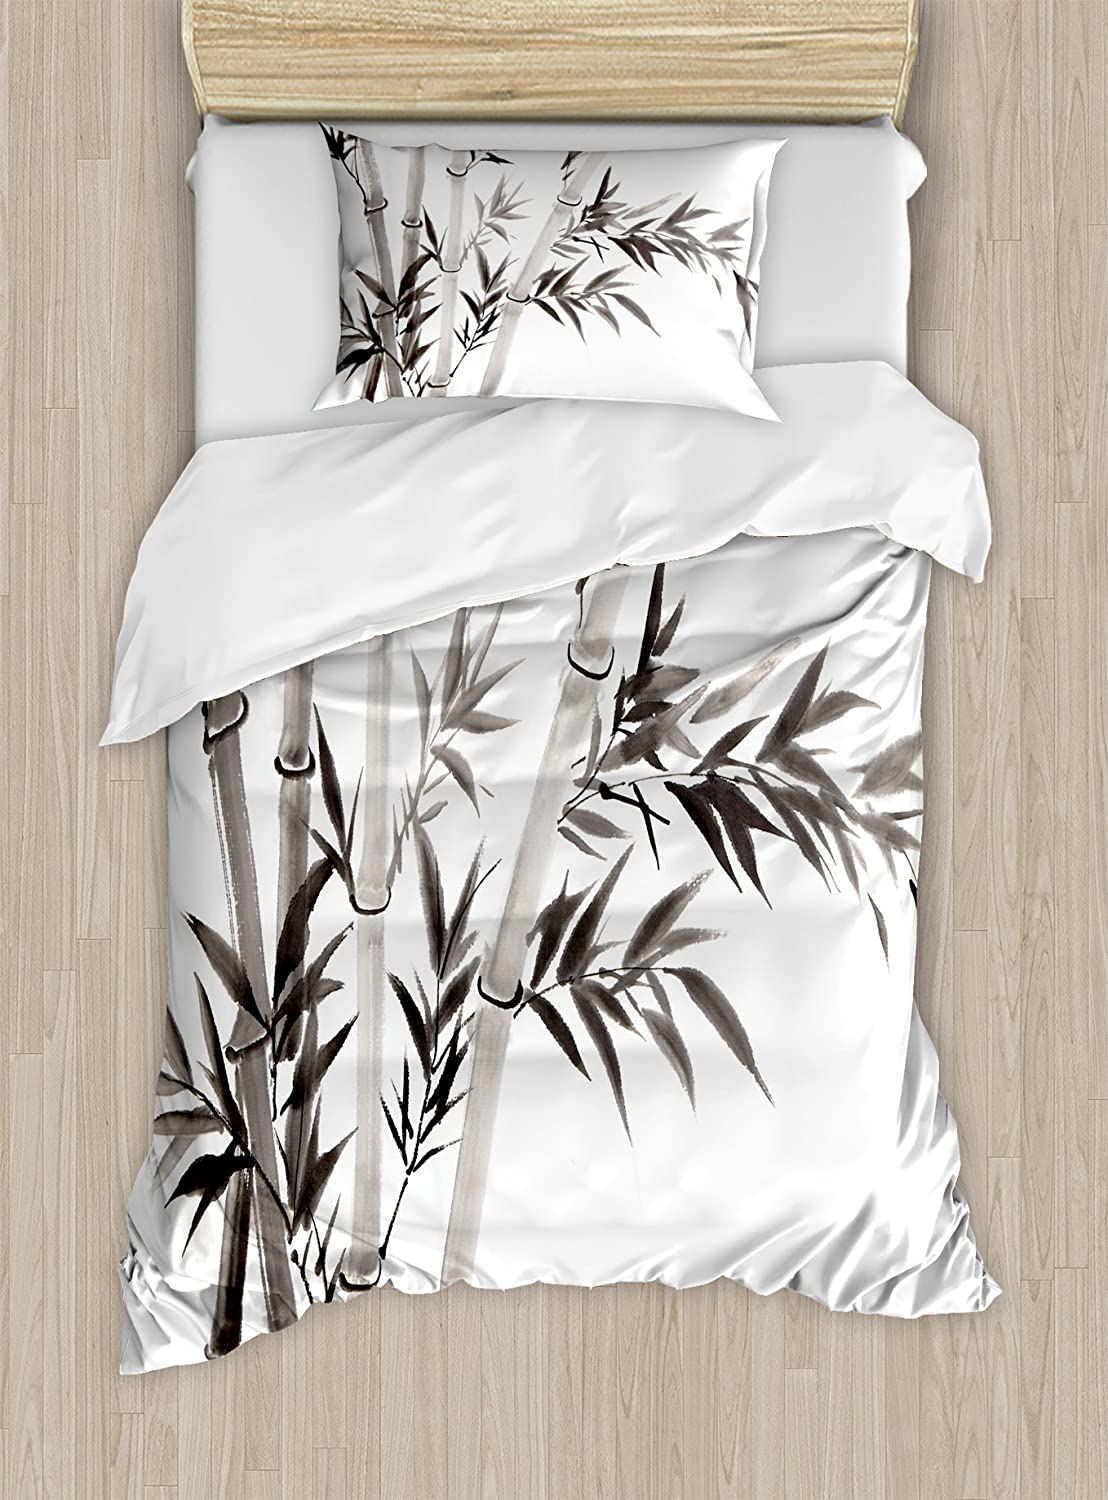 Largemouth Sea Bass Catching a Bite in Water Spray Motion Splash Wild Image Ambesonne Fishing Decor Duvet Cover Set 3 Piece Bedding Set with Pillow Shams Queen//Full Green Blue nev/_21301/_queen